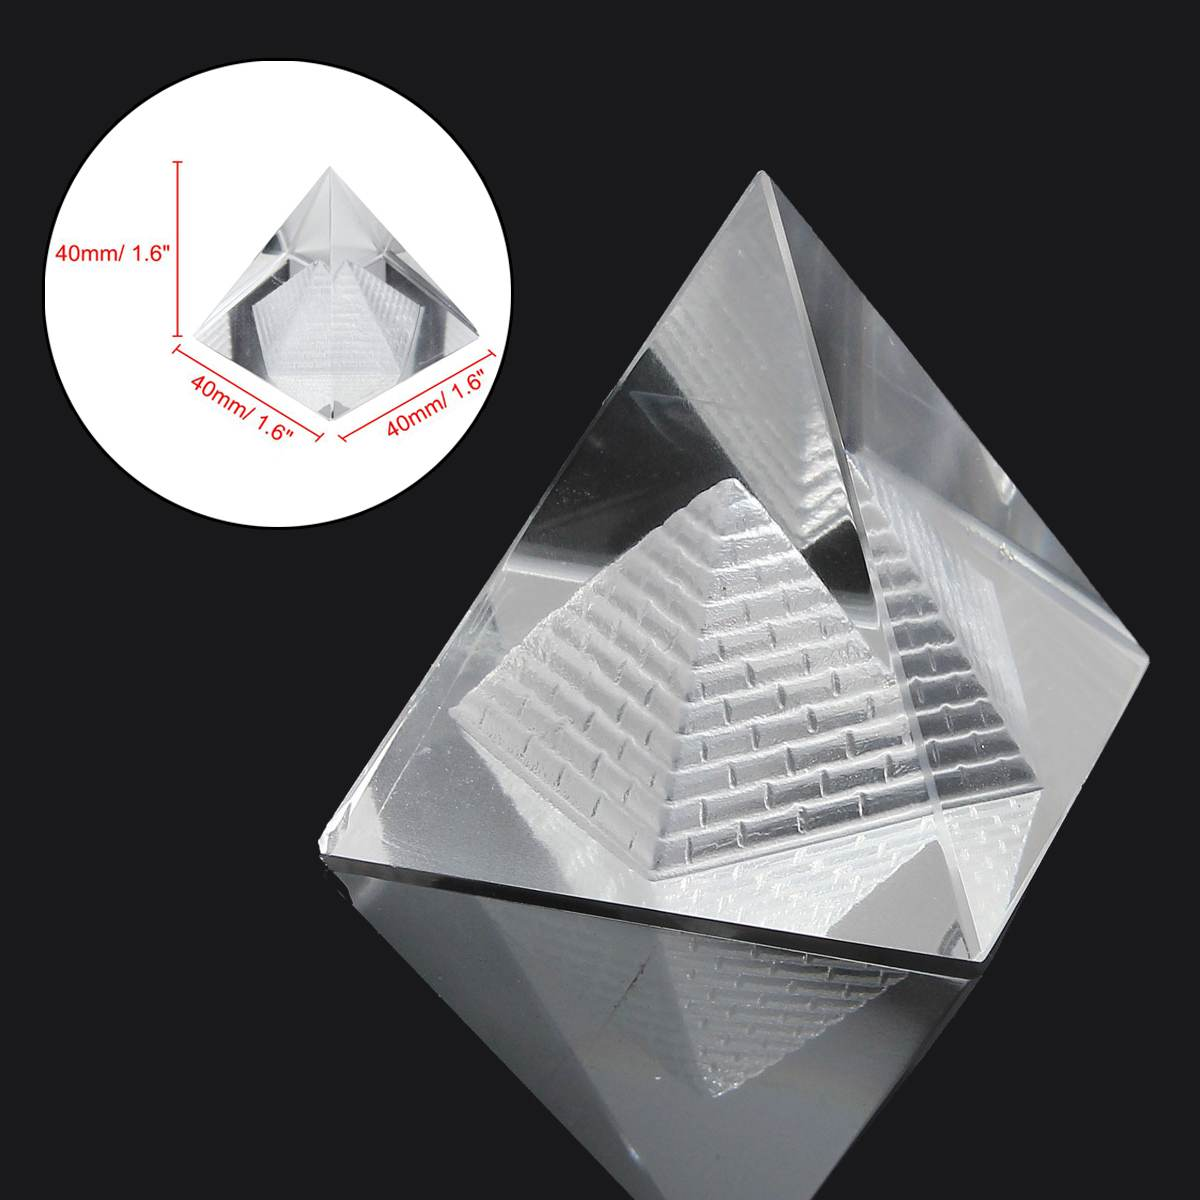 3D Egypt Shape Crystal Pyramid Clear Stone Home Desk Display Decor Healing Gifts